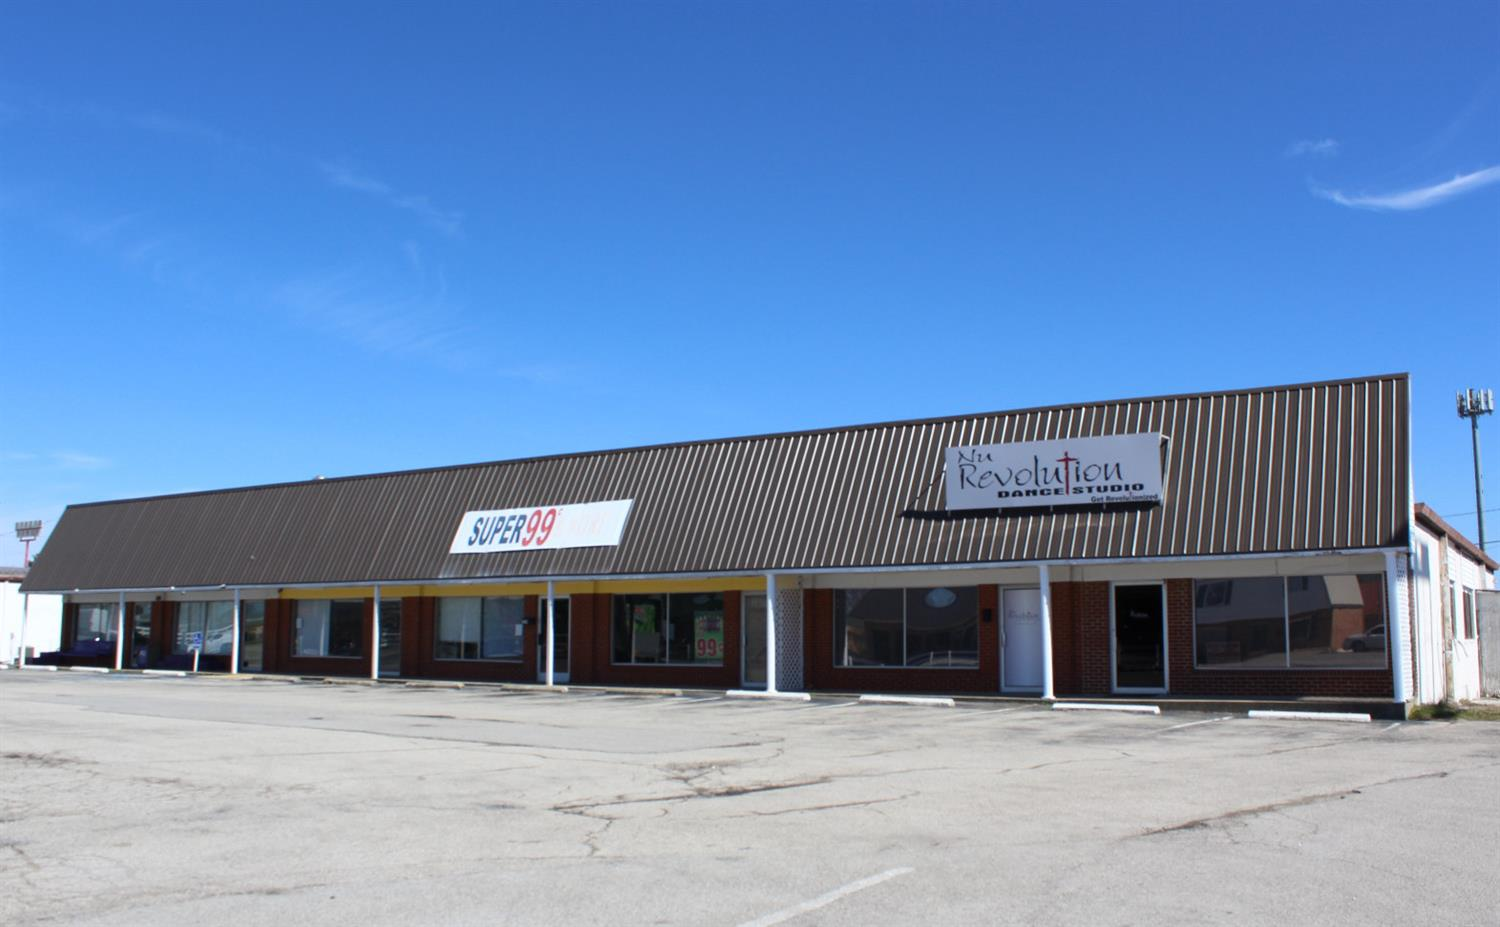 Retail%20or%20office%20space%20for%20lease.%20%204,500%20sq.%20ft.%20of%20office/retail%20space%20for%20lease%20at%20%20%20$2500.00%20per%20month.